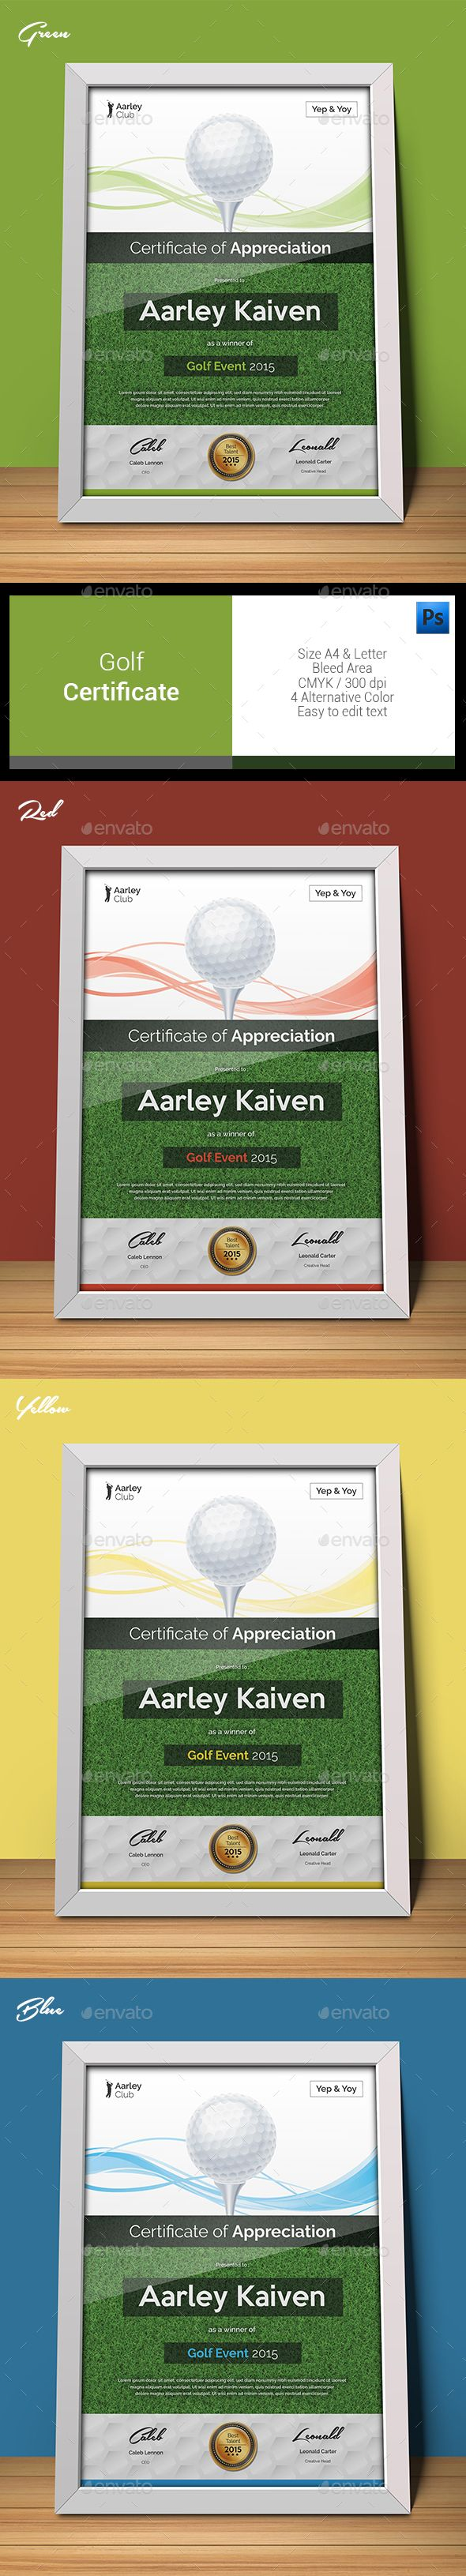 154 best images about certificate template design on pinterest